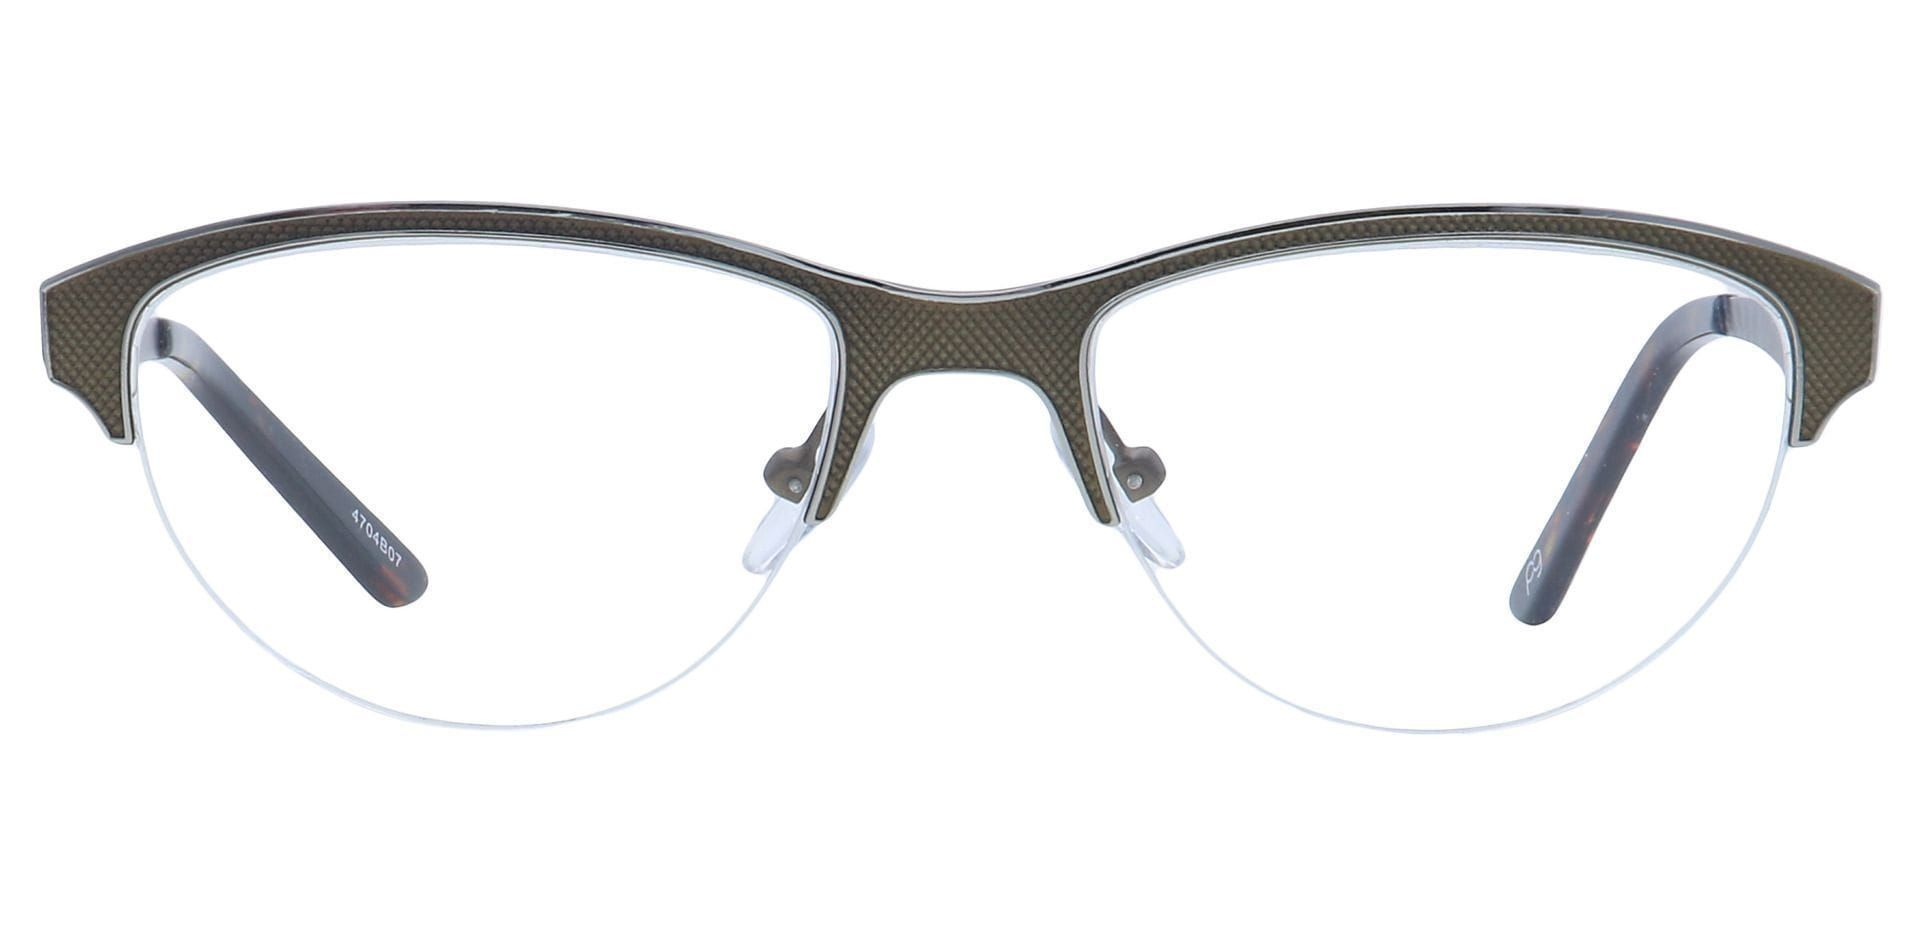 Joan Cat-Eye Reading Glasses - Brown